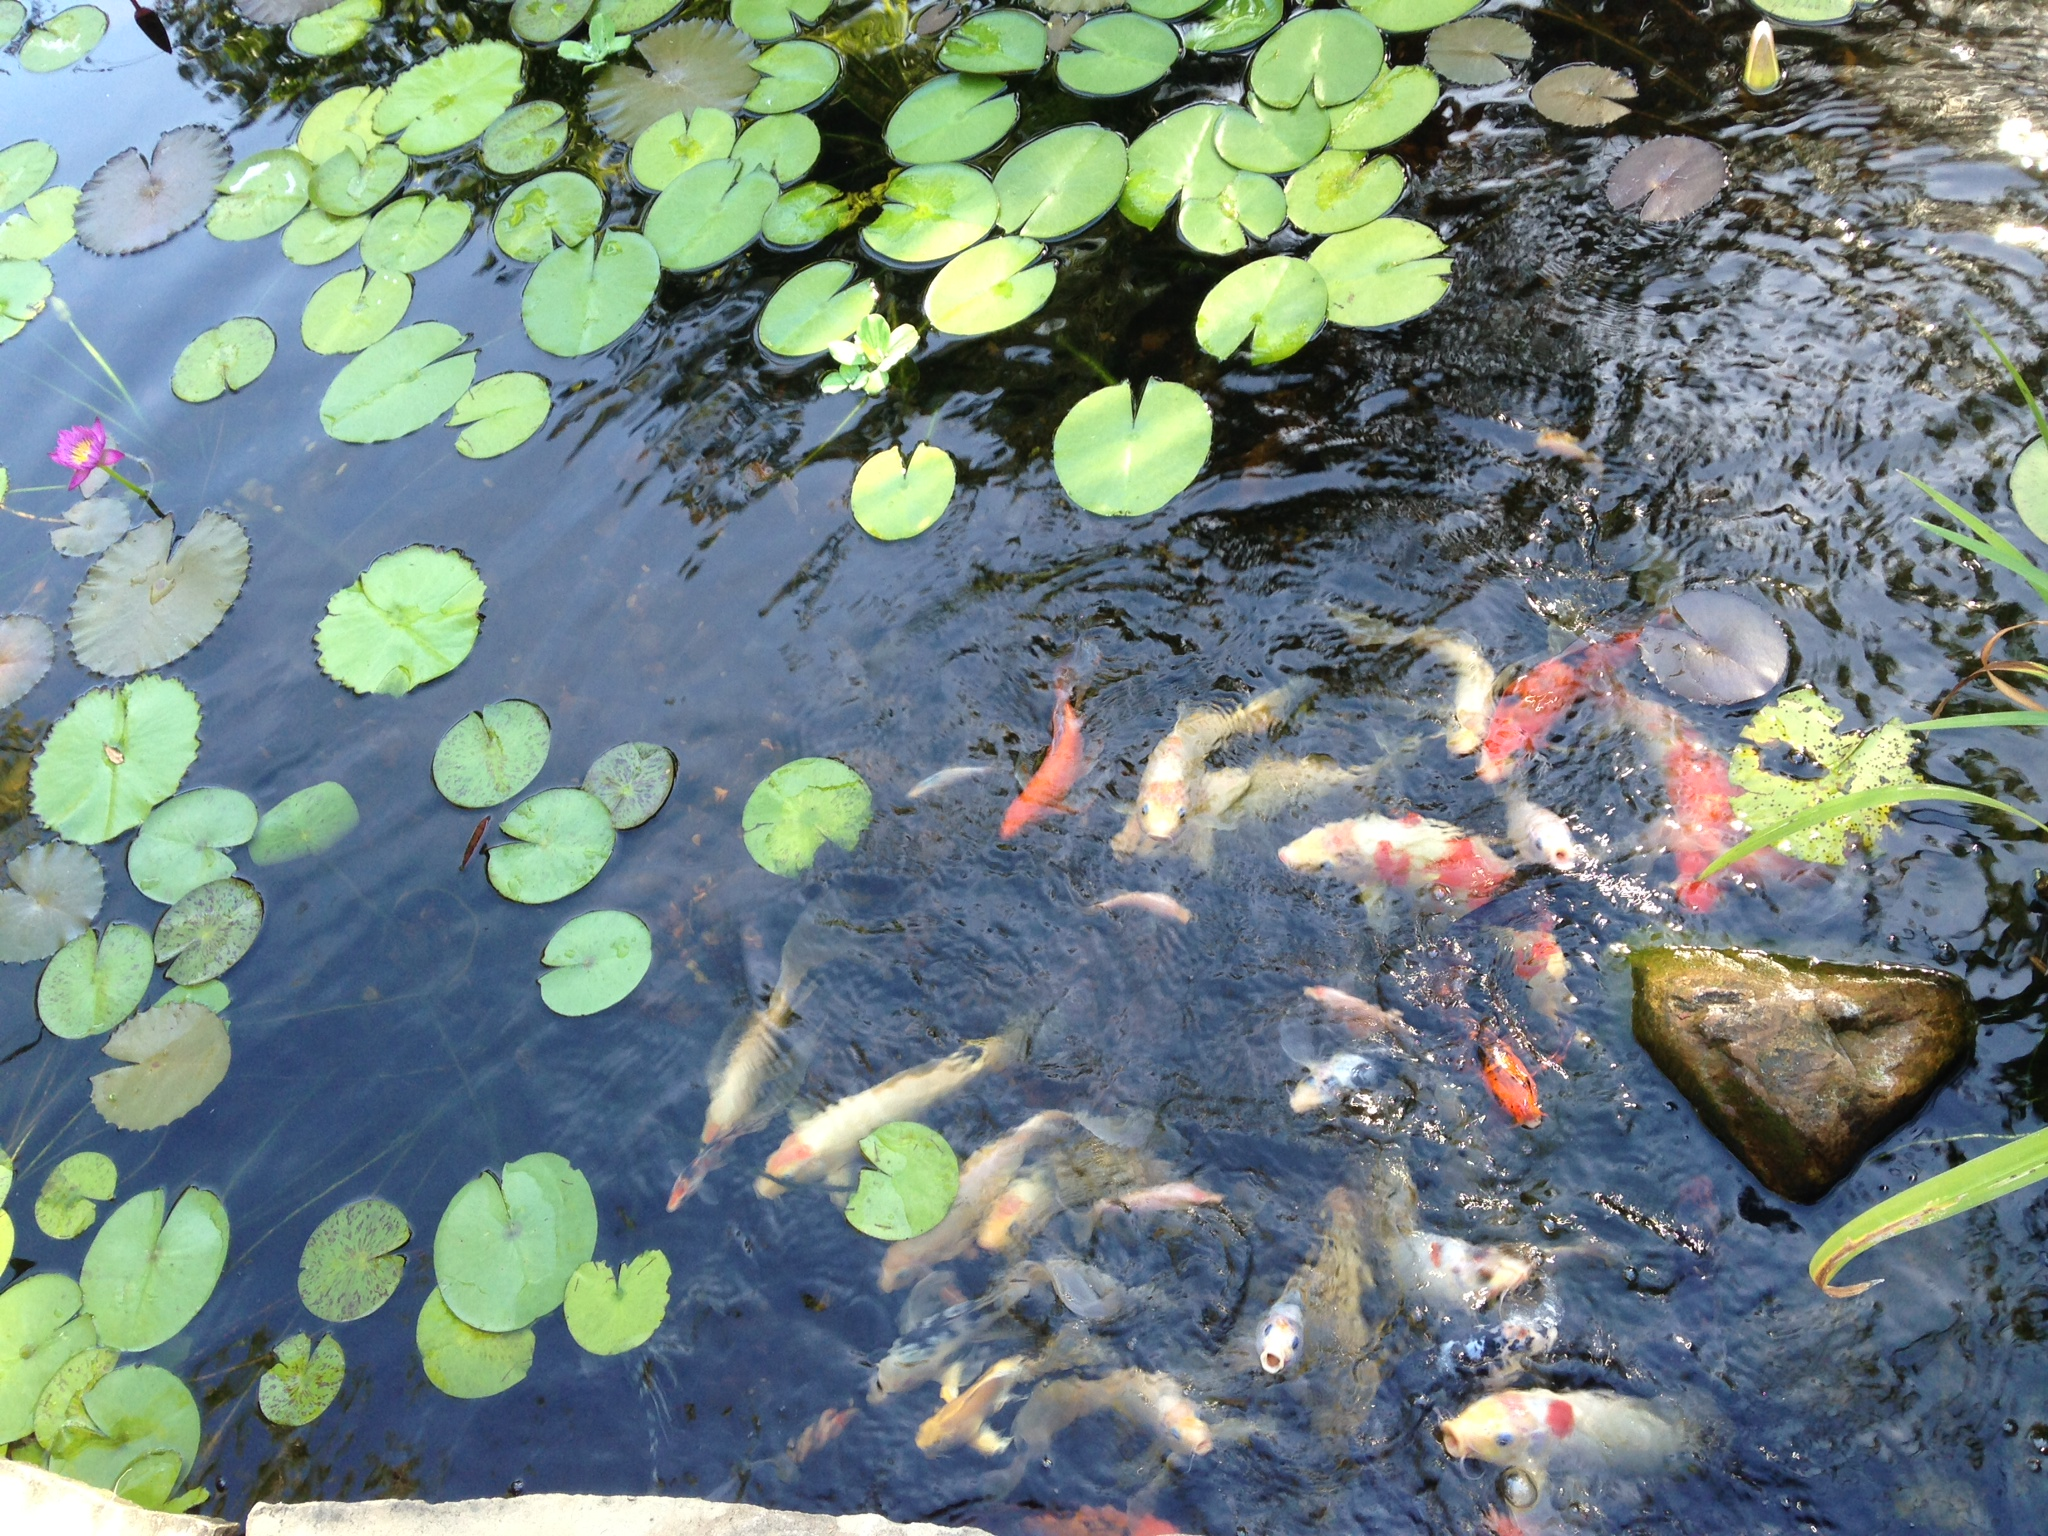 Louisiana Pond Management Coupons Near Me In Baton Rouge